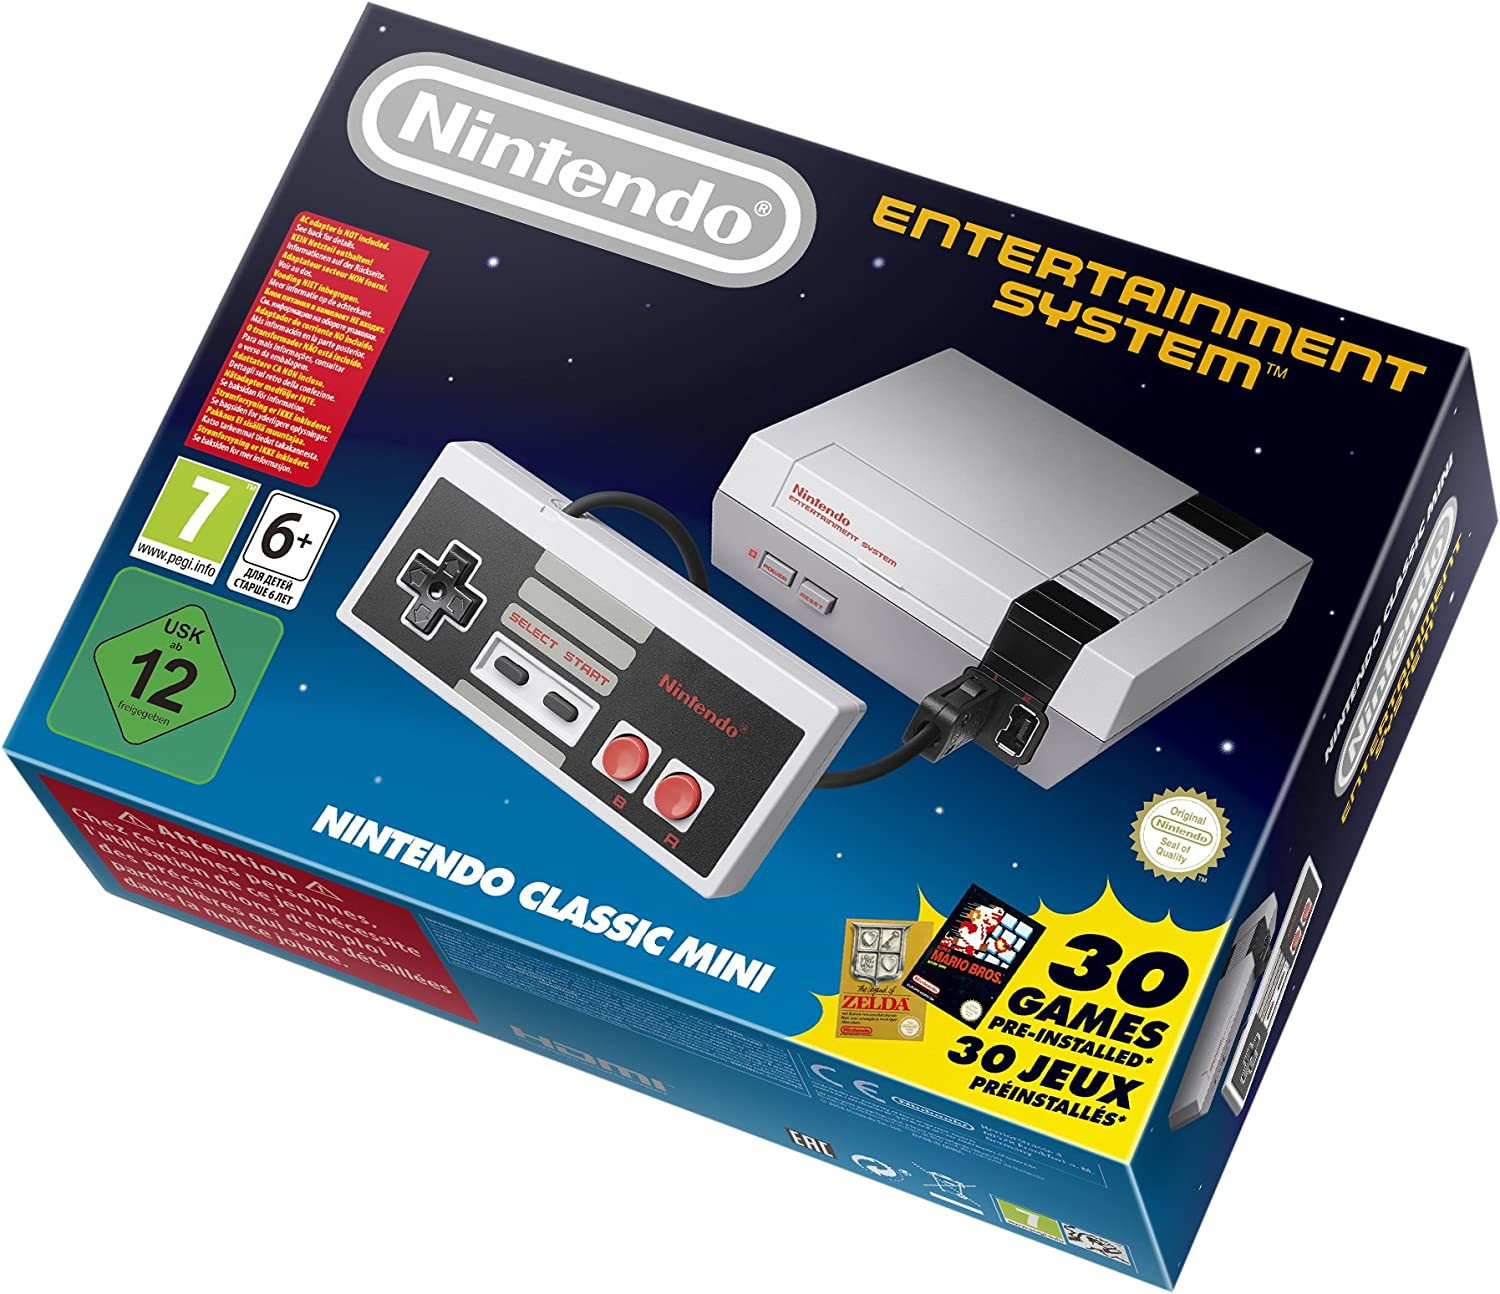 The NES Mini